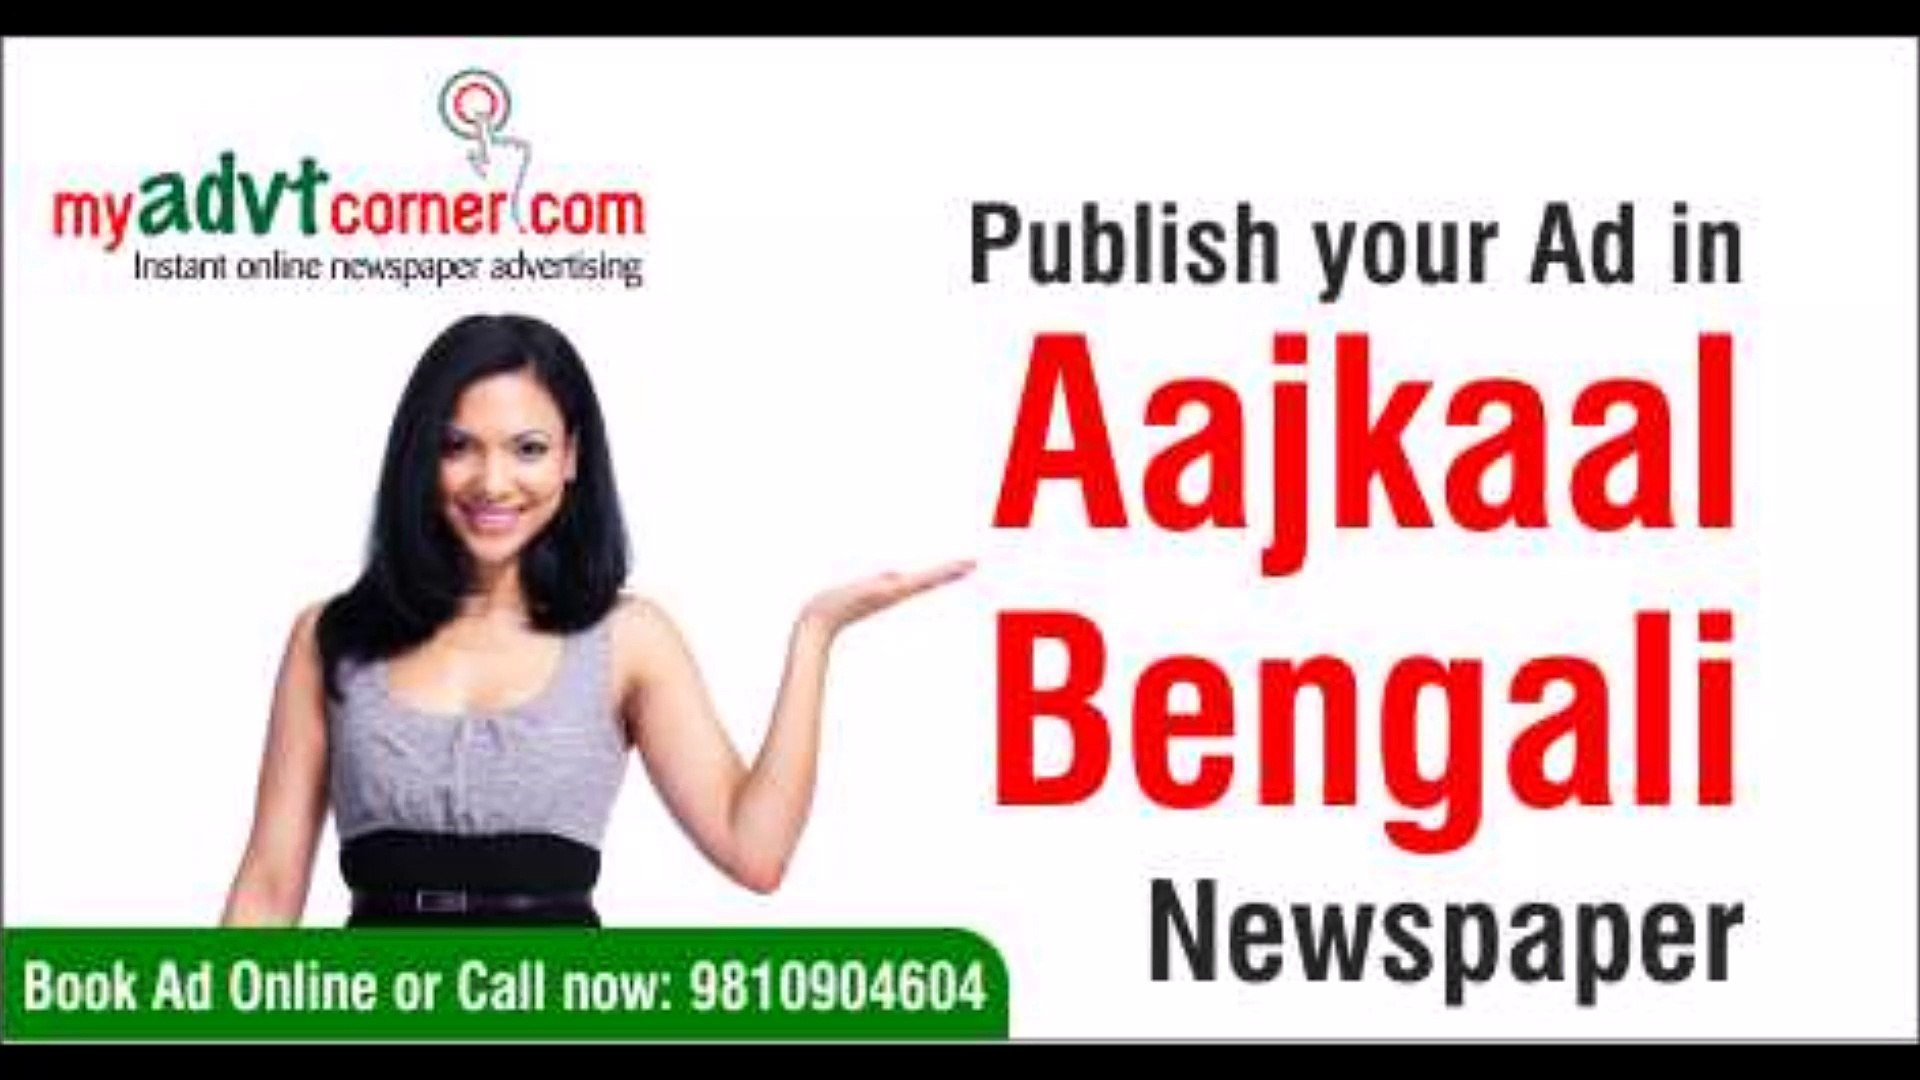 Aajkaal Newspaper Ads